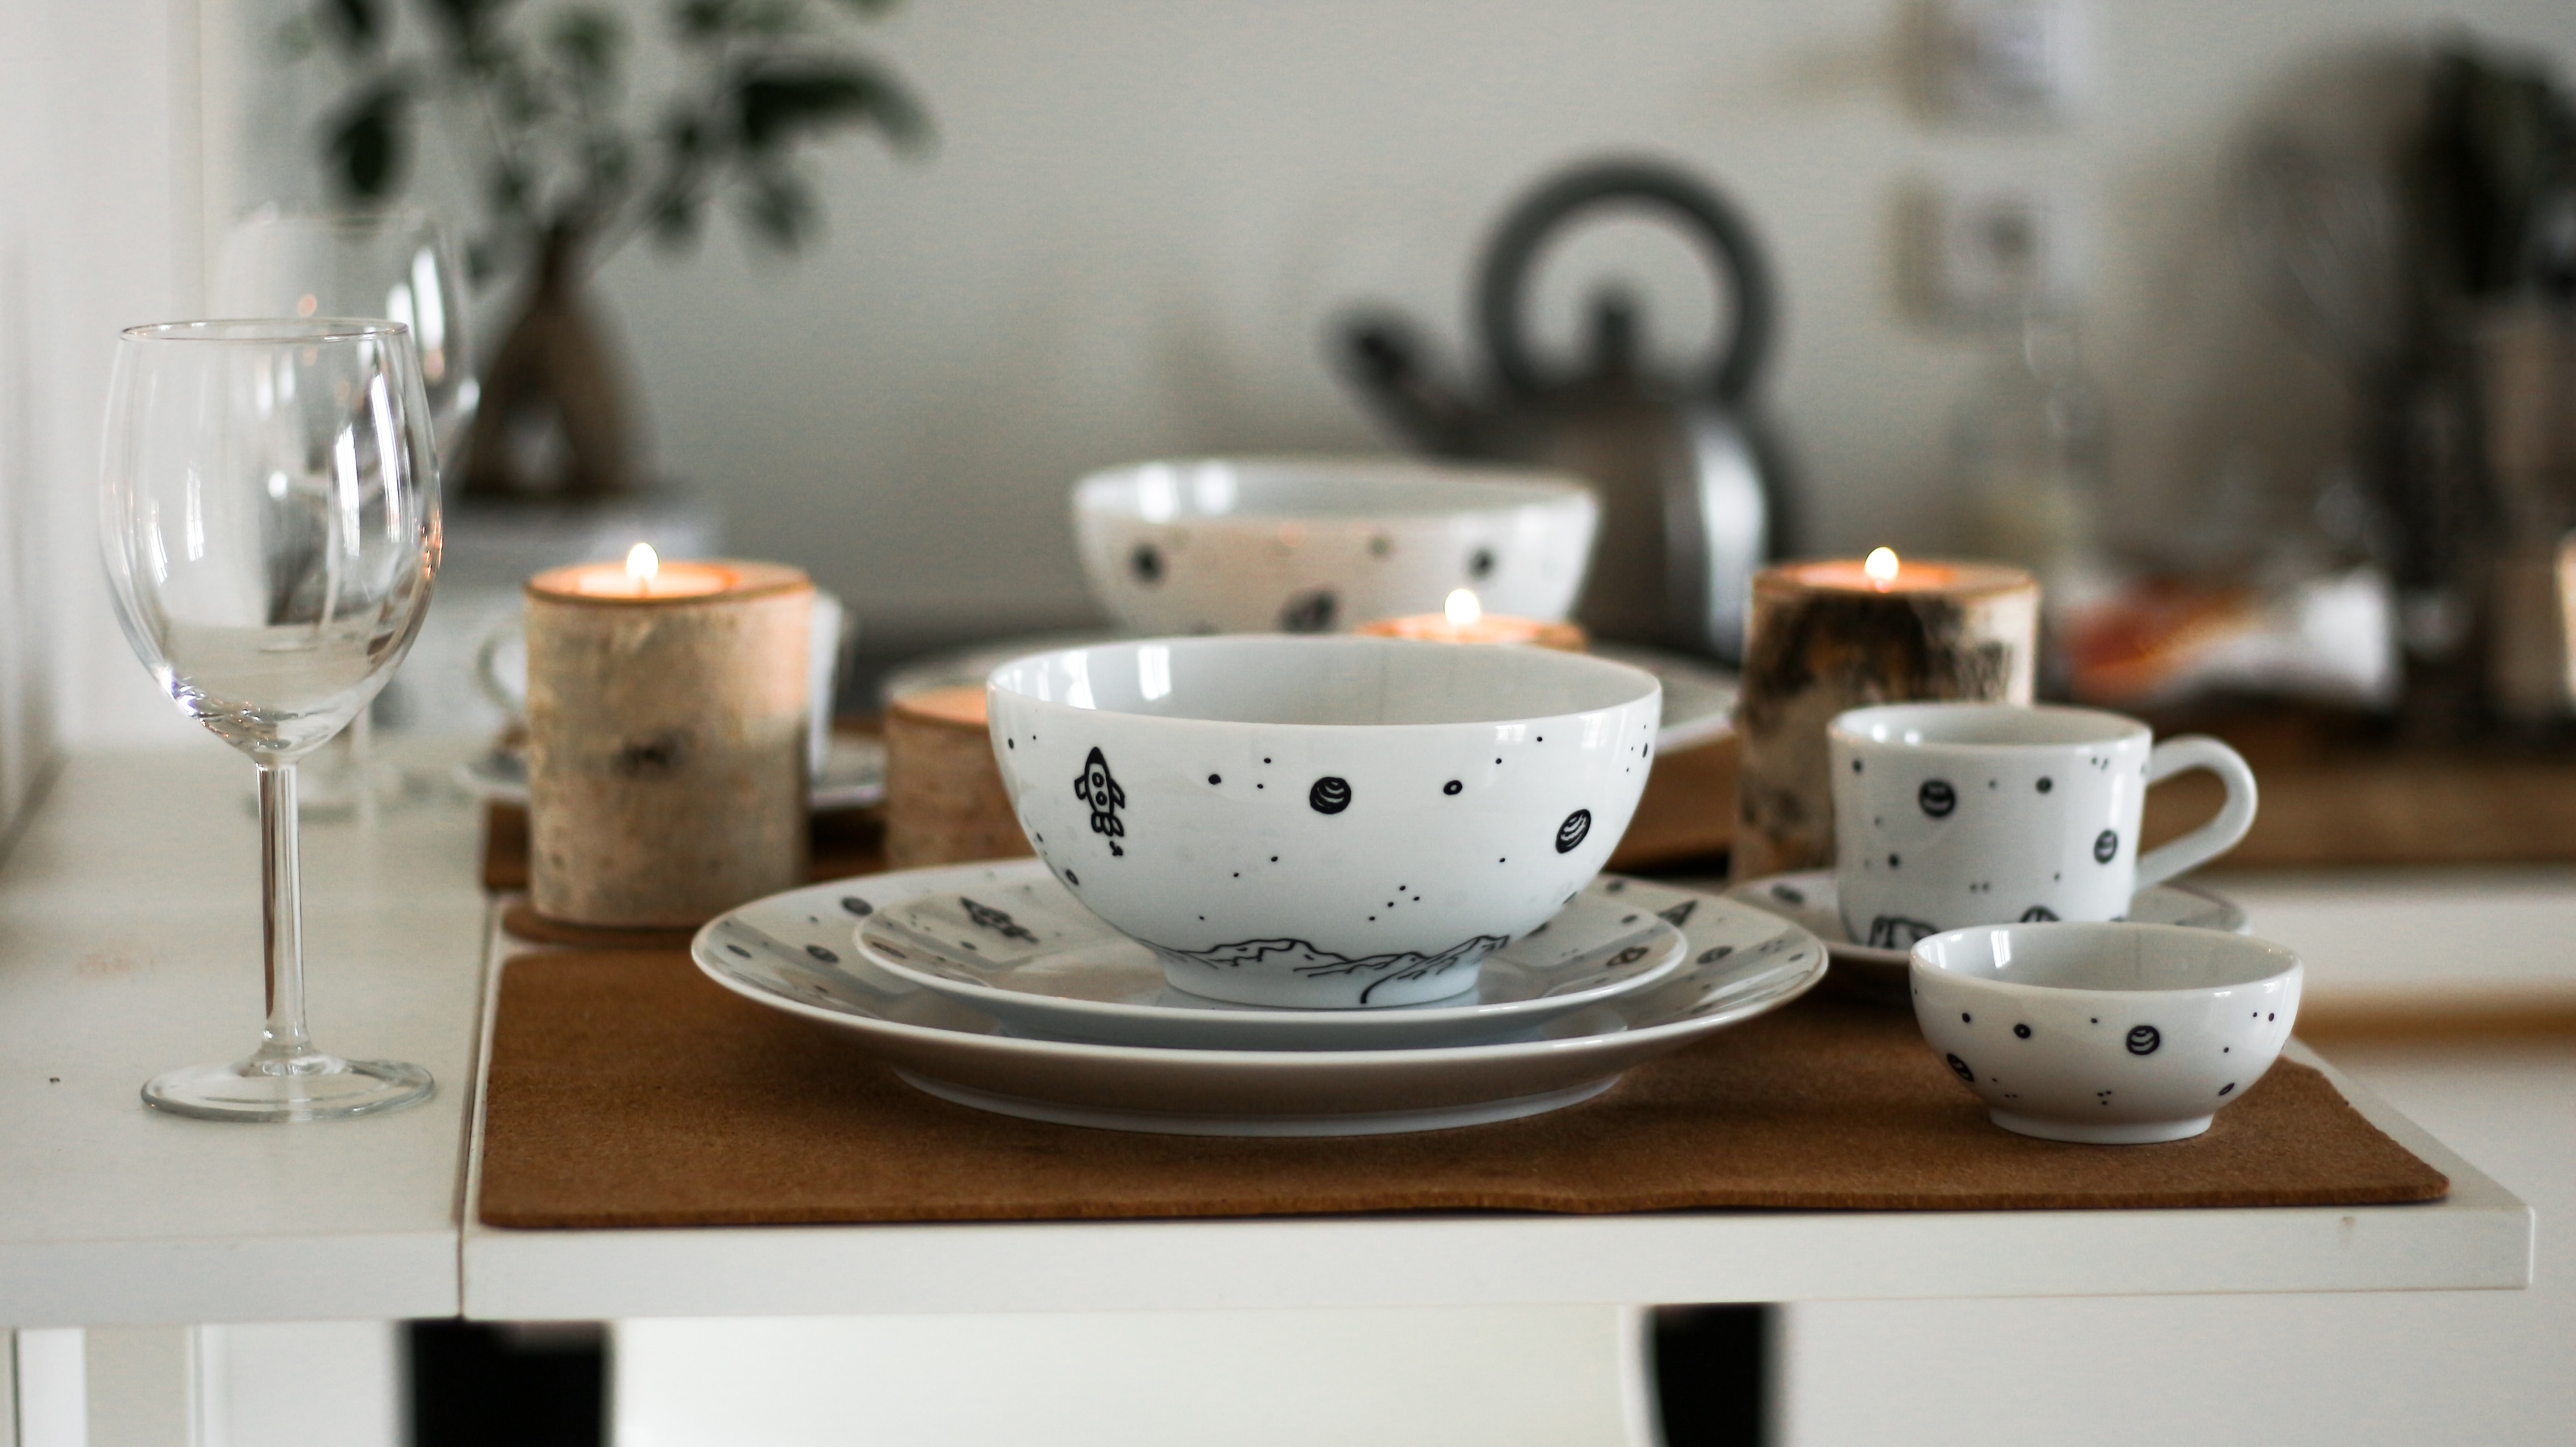 white and black ceramic wares on table